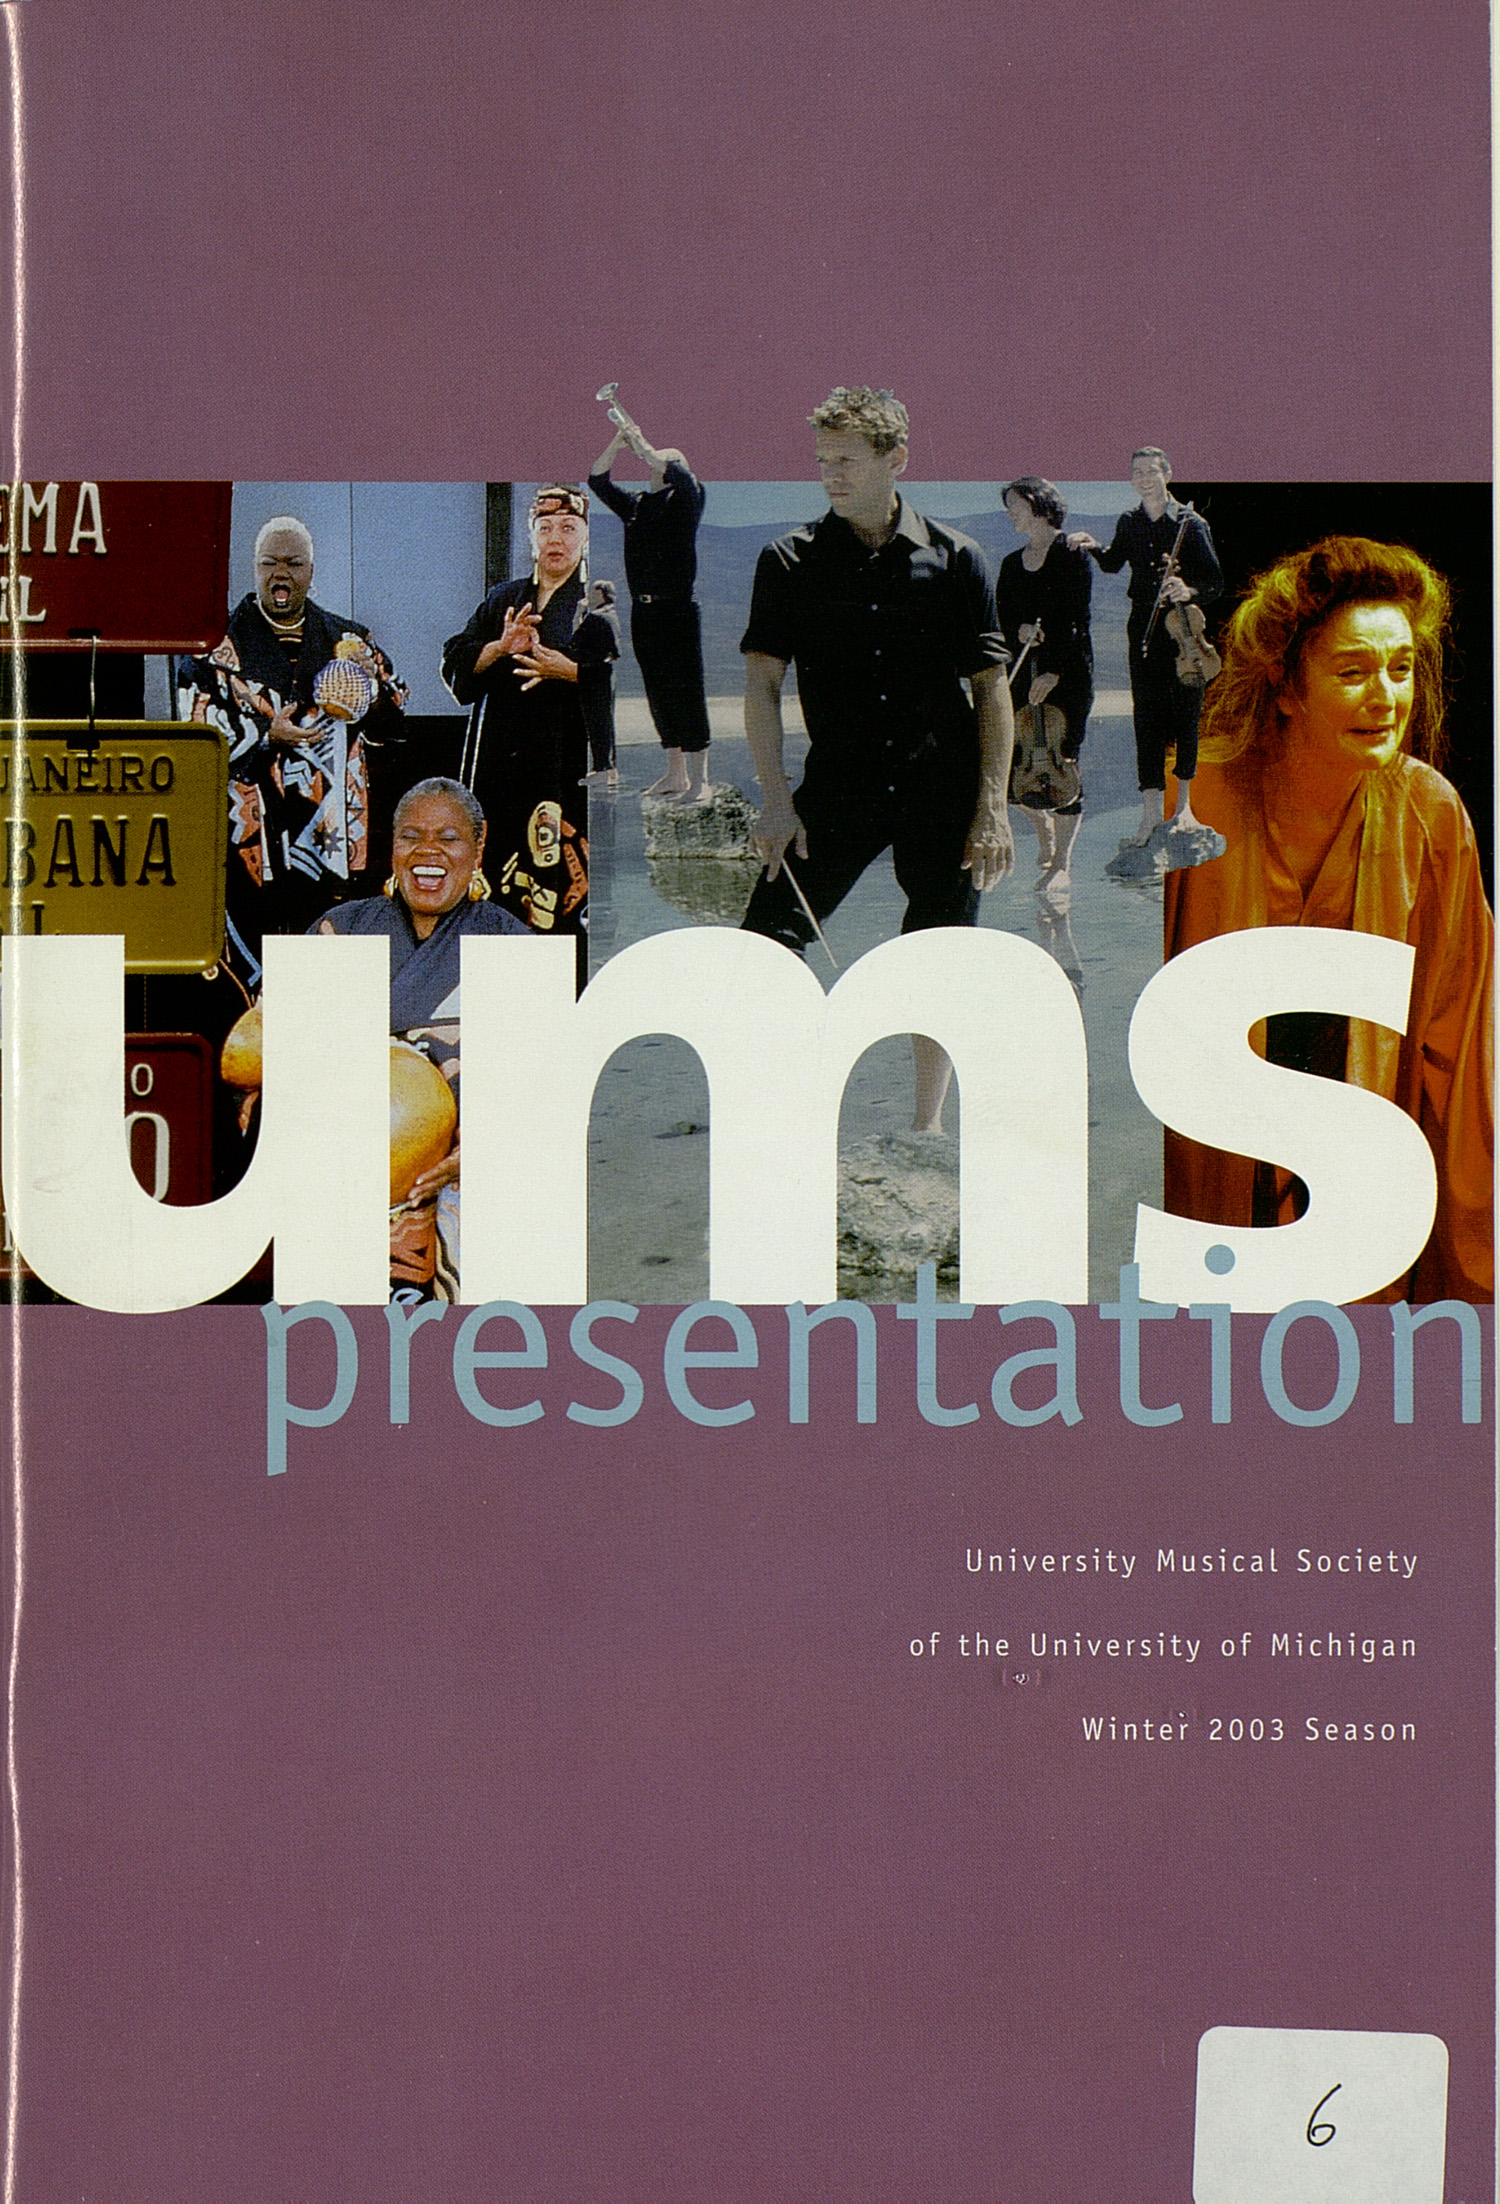 UMS Concert Program, Friday Jan. 10 To 20: University Musical Society: 2003 Winter - Friday Jan. 10 To 20 --  image